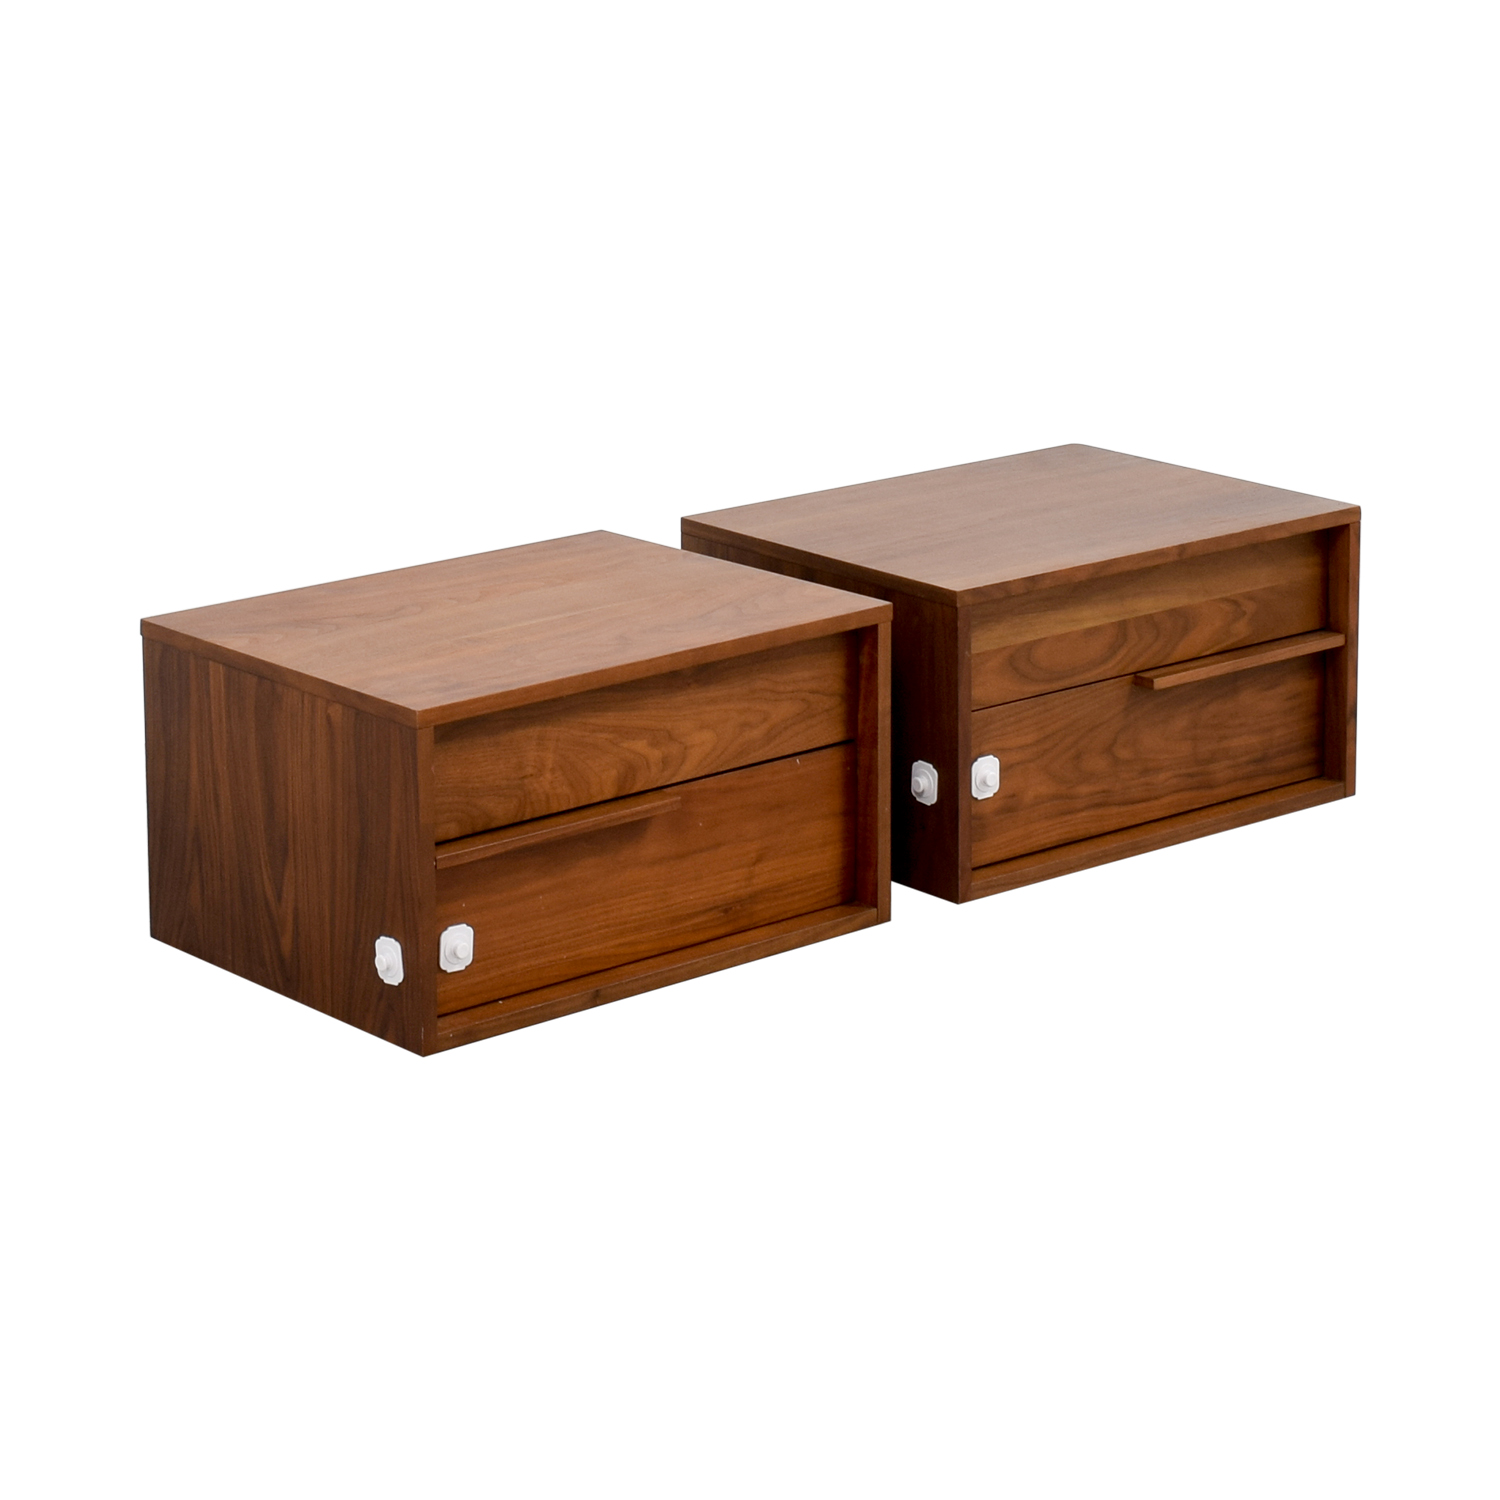 Modloft Modloft Jane Two-Drawer Nightstands